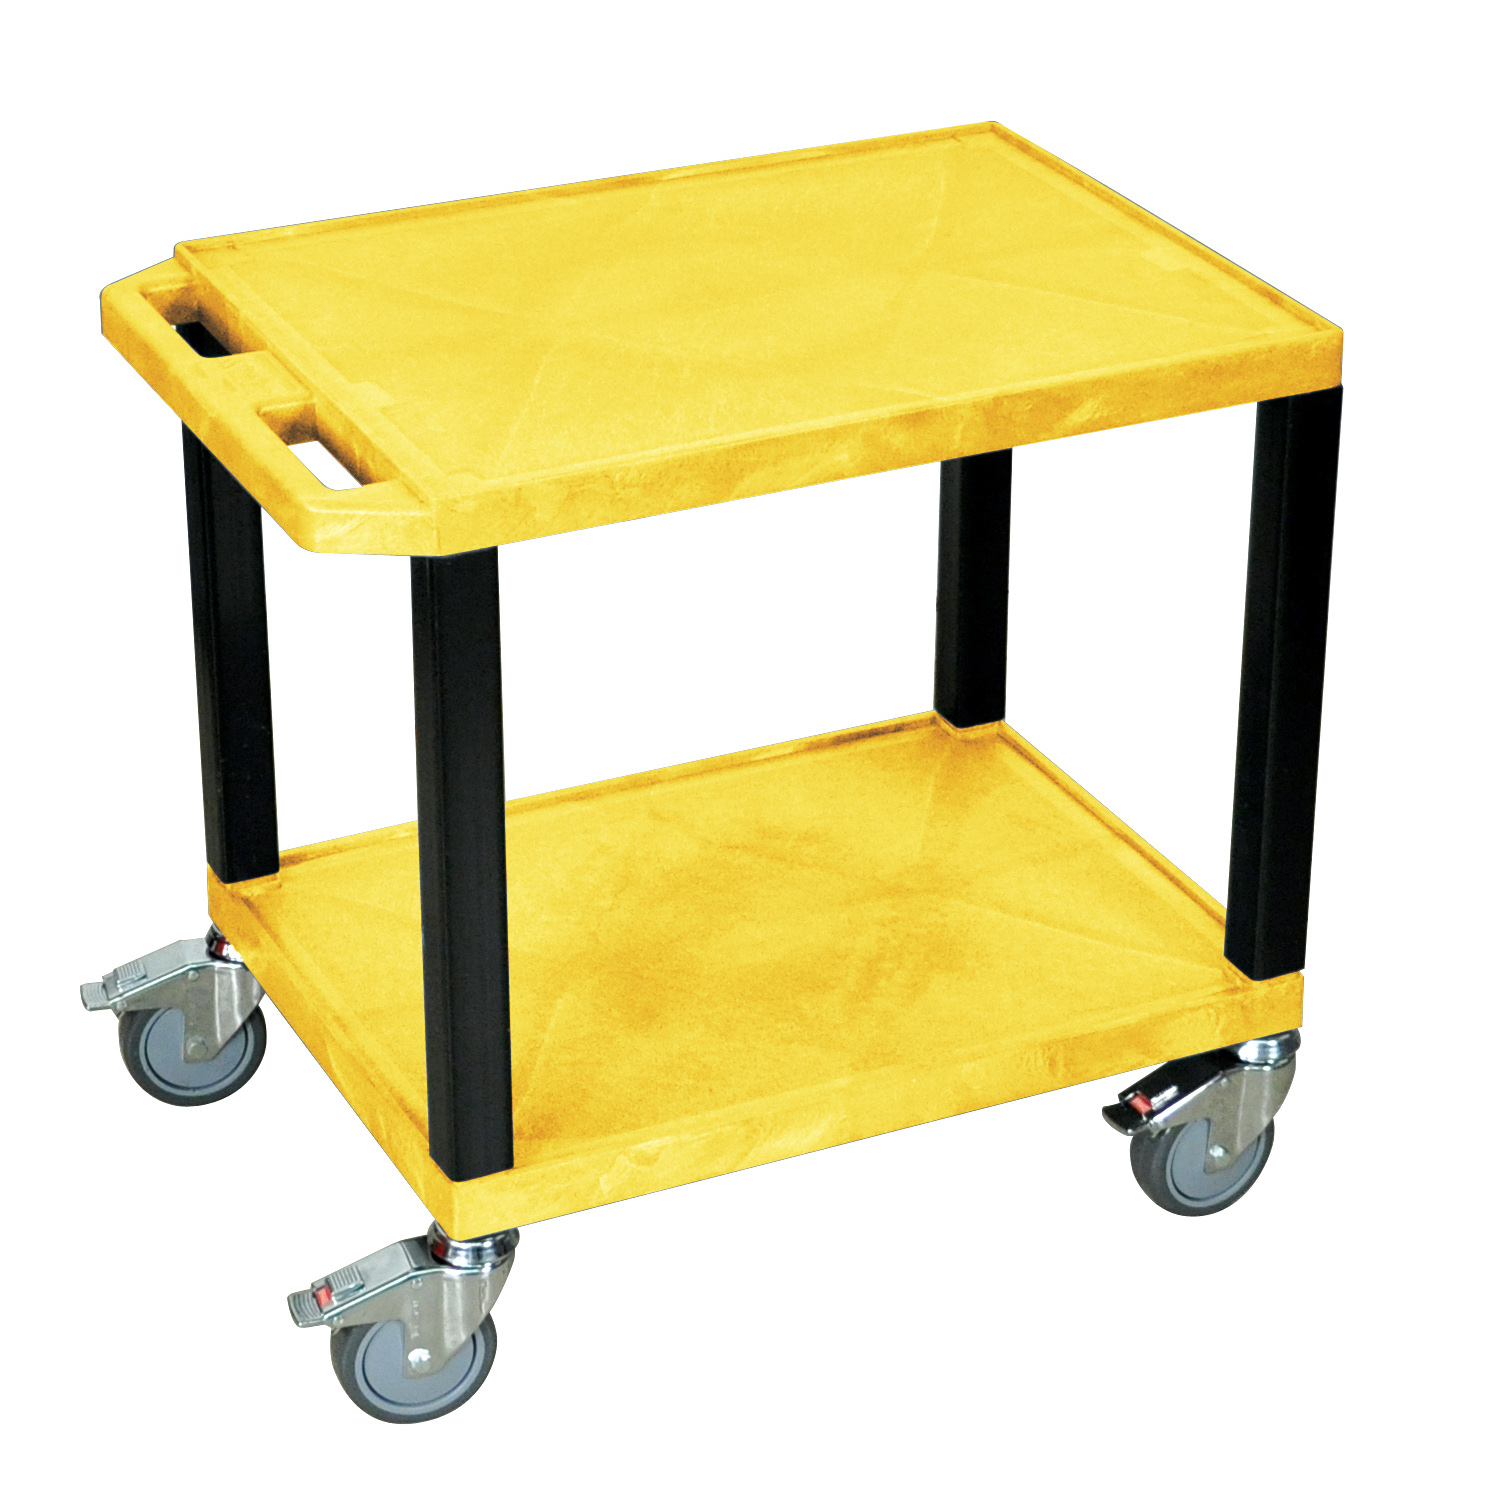 H. Wilson Movable Utility Cart With Chrome Casters Yellow and Black at Sears.com